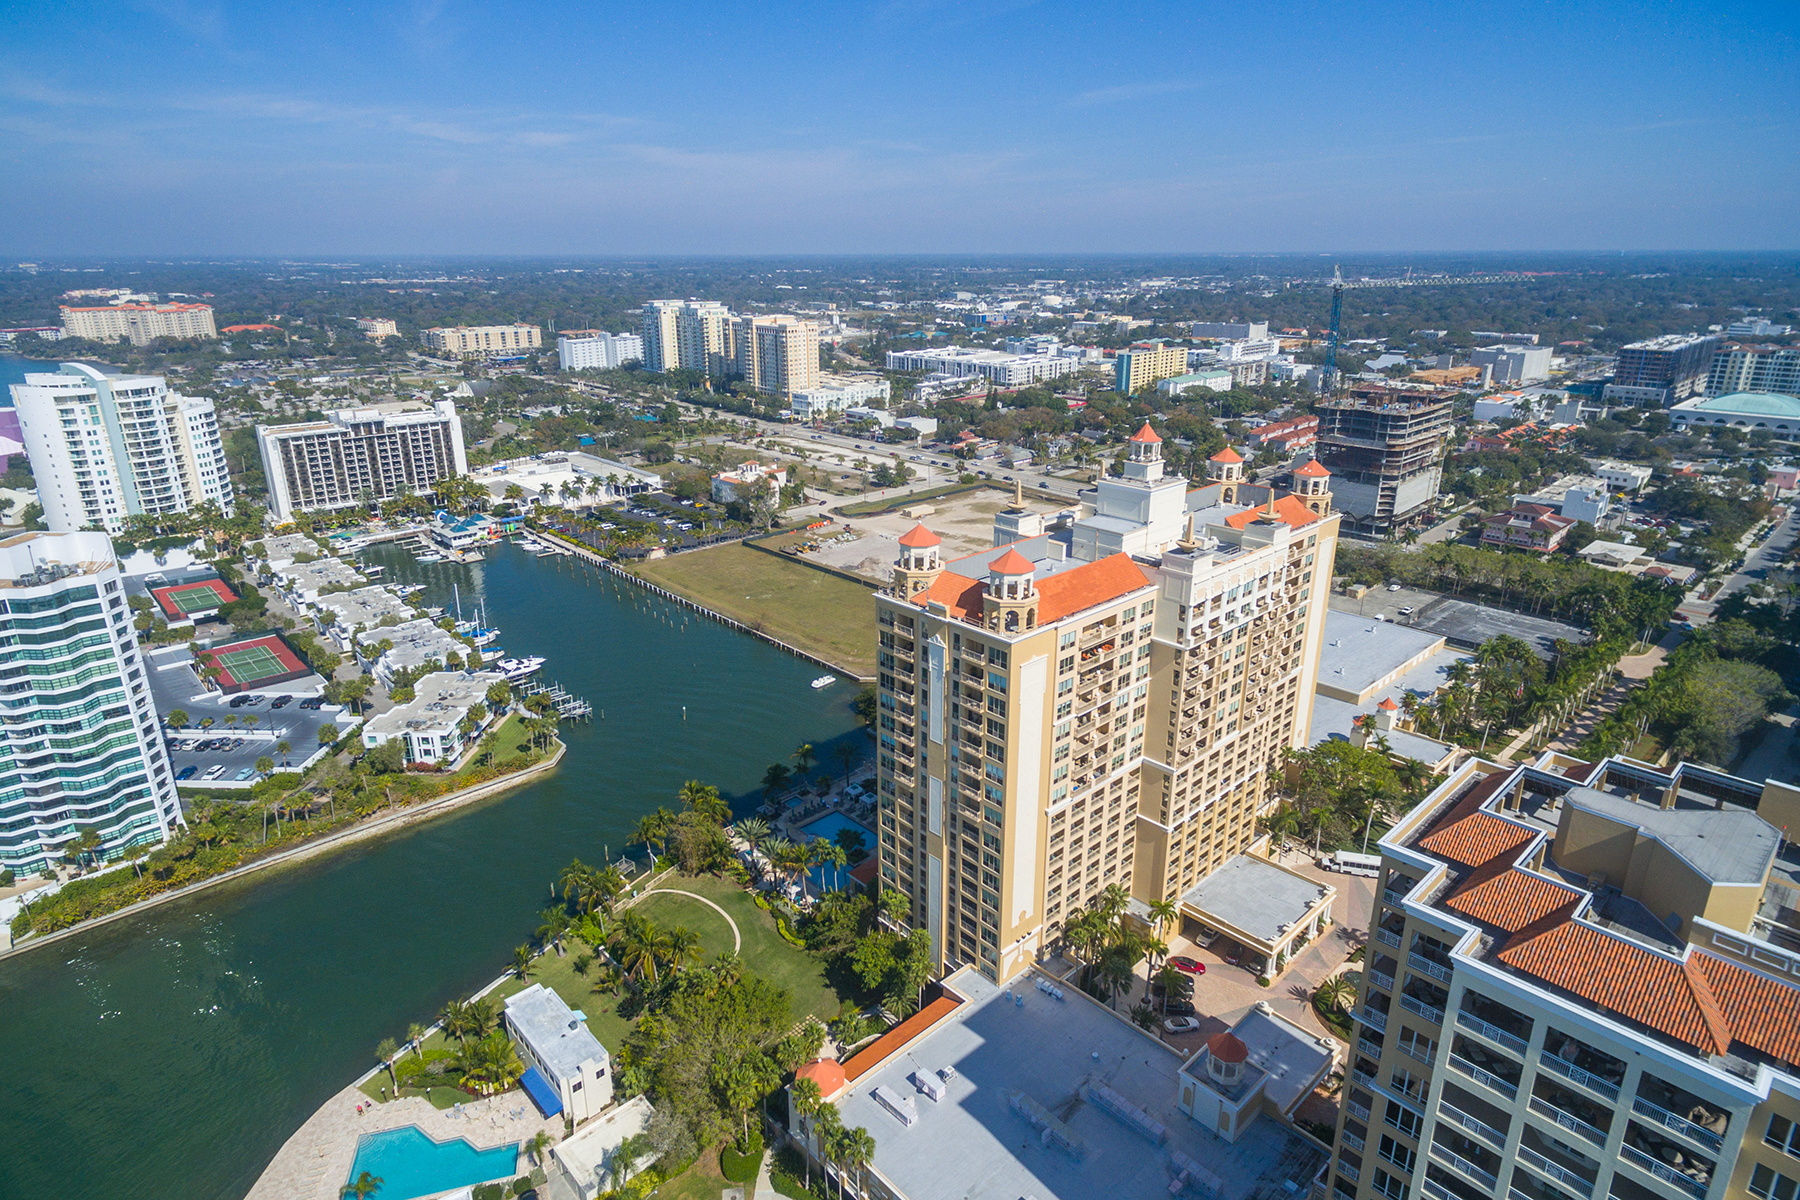 Condominium for Sale at THE RESIDENCES AT RITZ CARLTON 1111 Ritz Carlton Dr 1803 Sarasota, Florida, 34236 United States